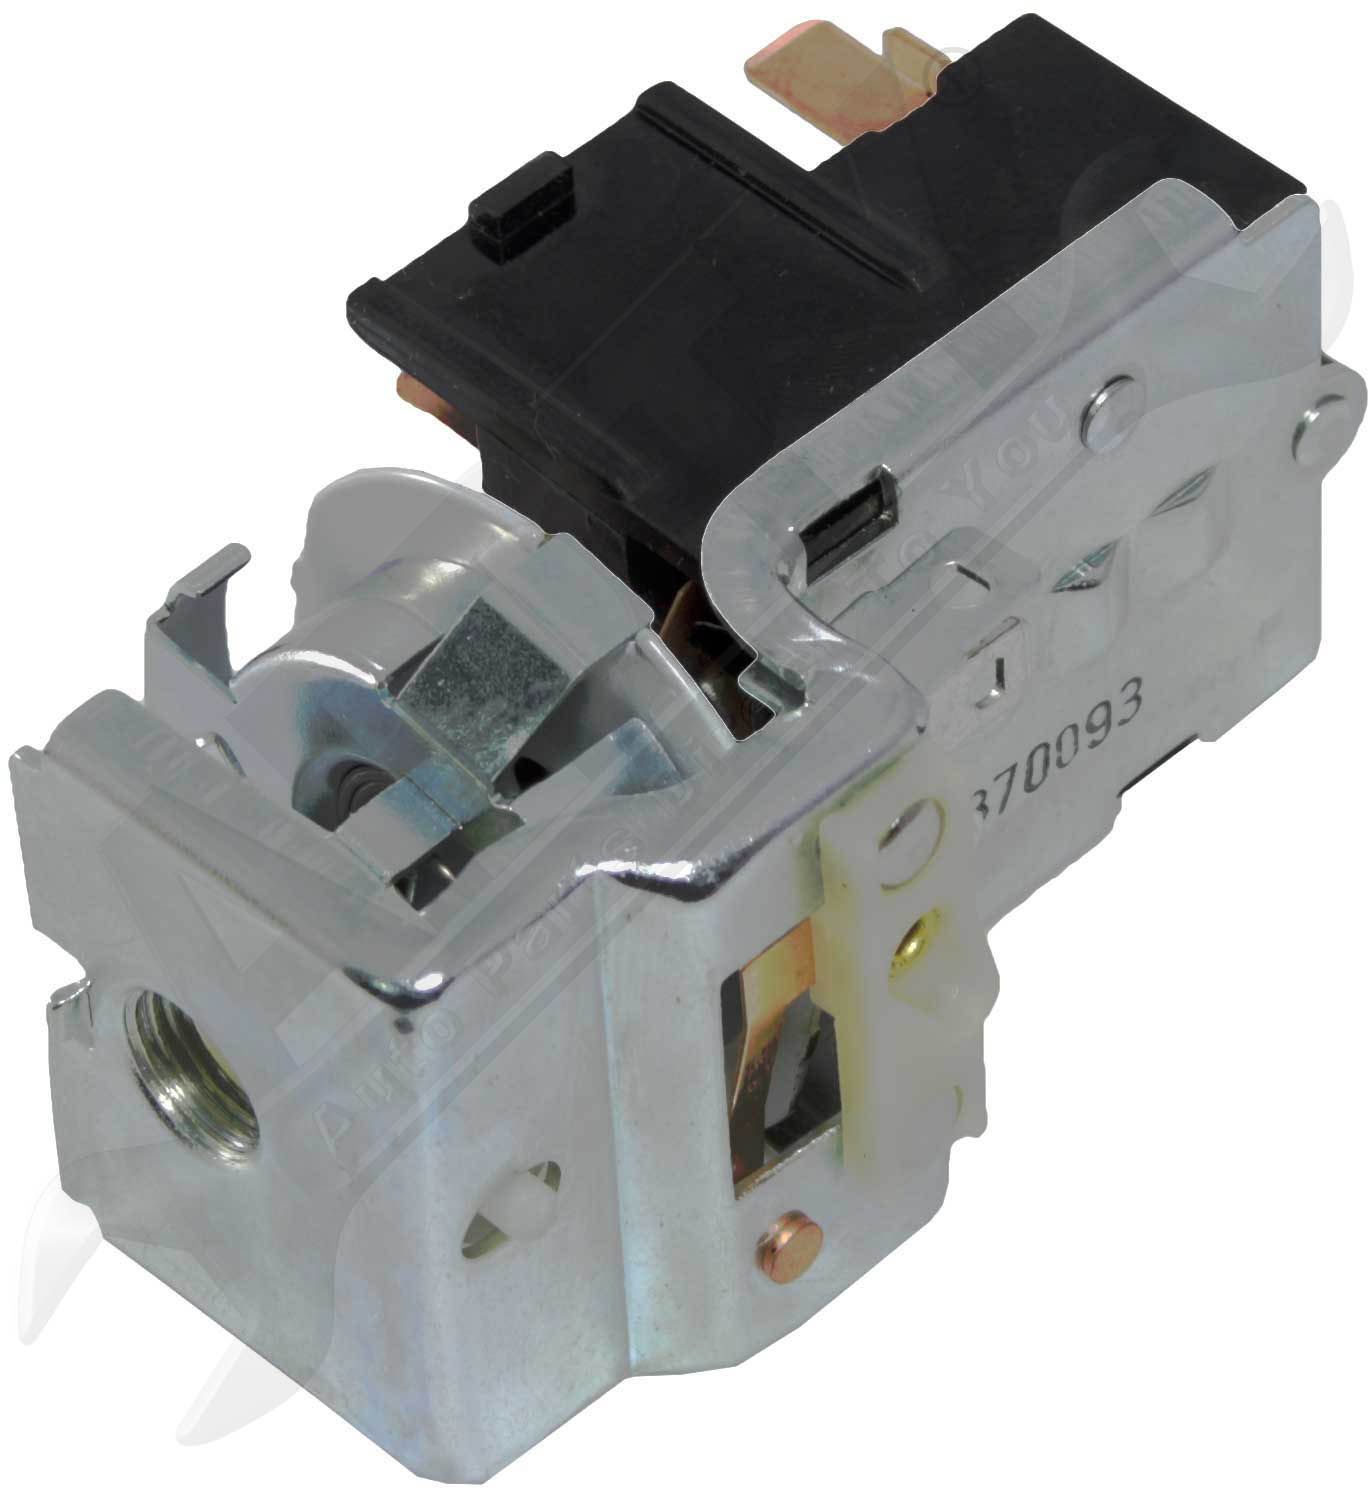 hight resolution of  1998 dodge ram headlight switch wiring diagram apdty 68148078aa electrical headlight headlamp switch